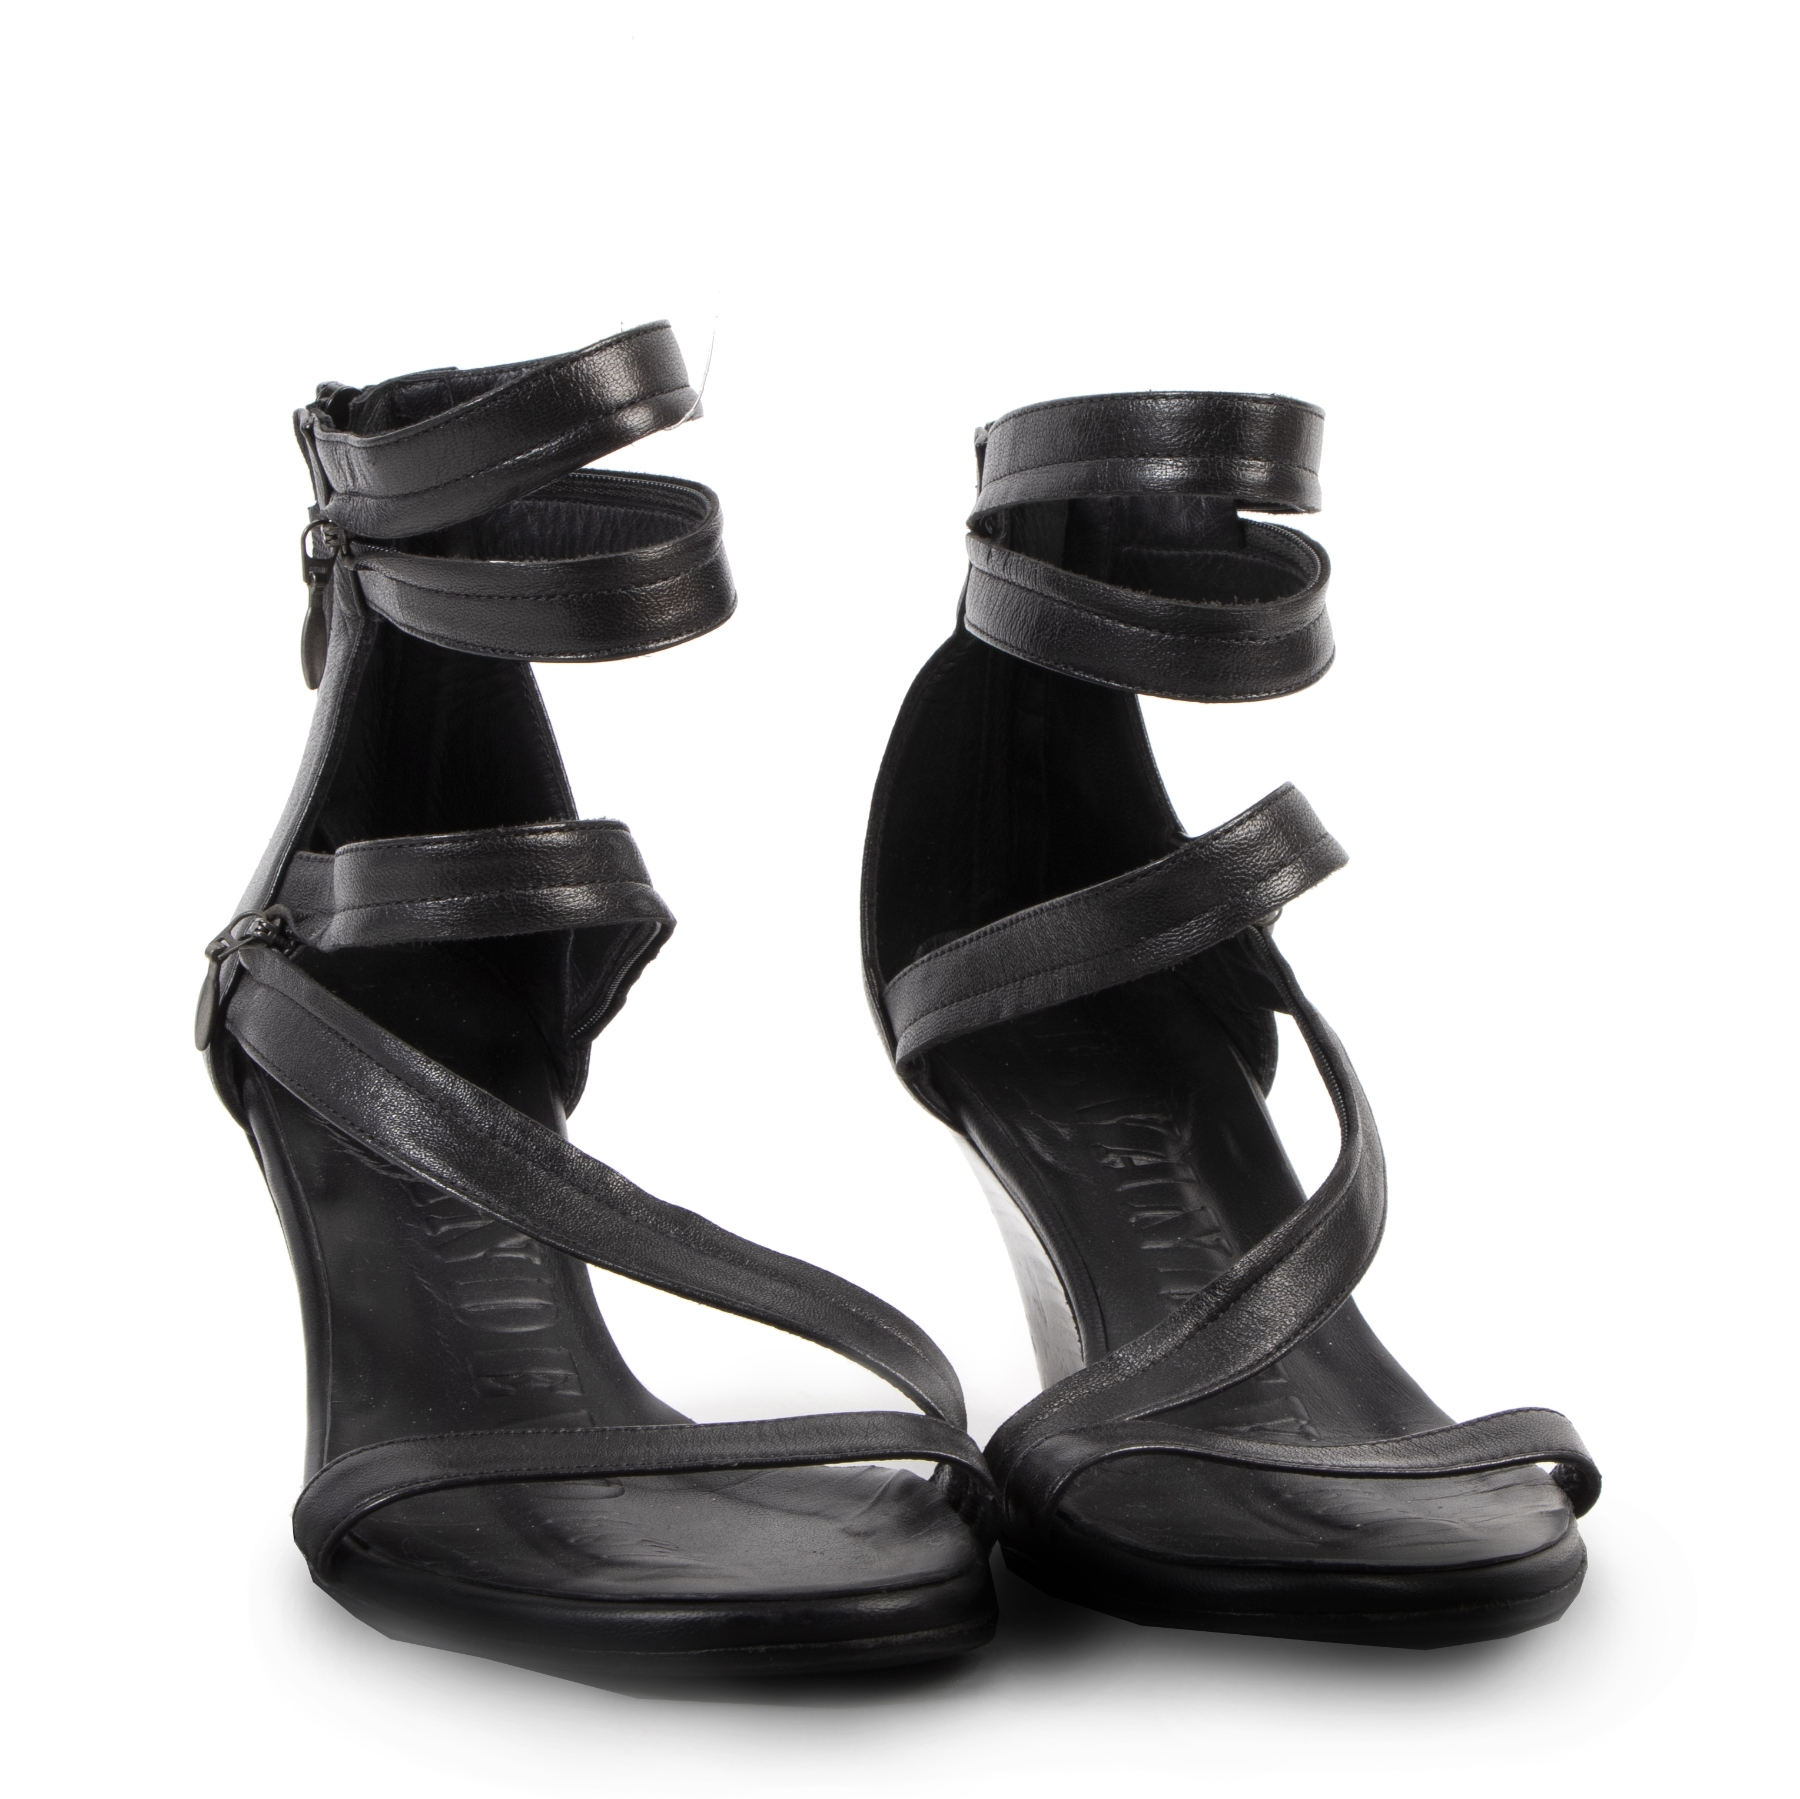 Authentique seconde-main vintage AF Vandevorst Black Wedge Sandals - Size 35,5 achète en ligne webshop LabelLOV